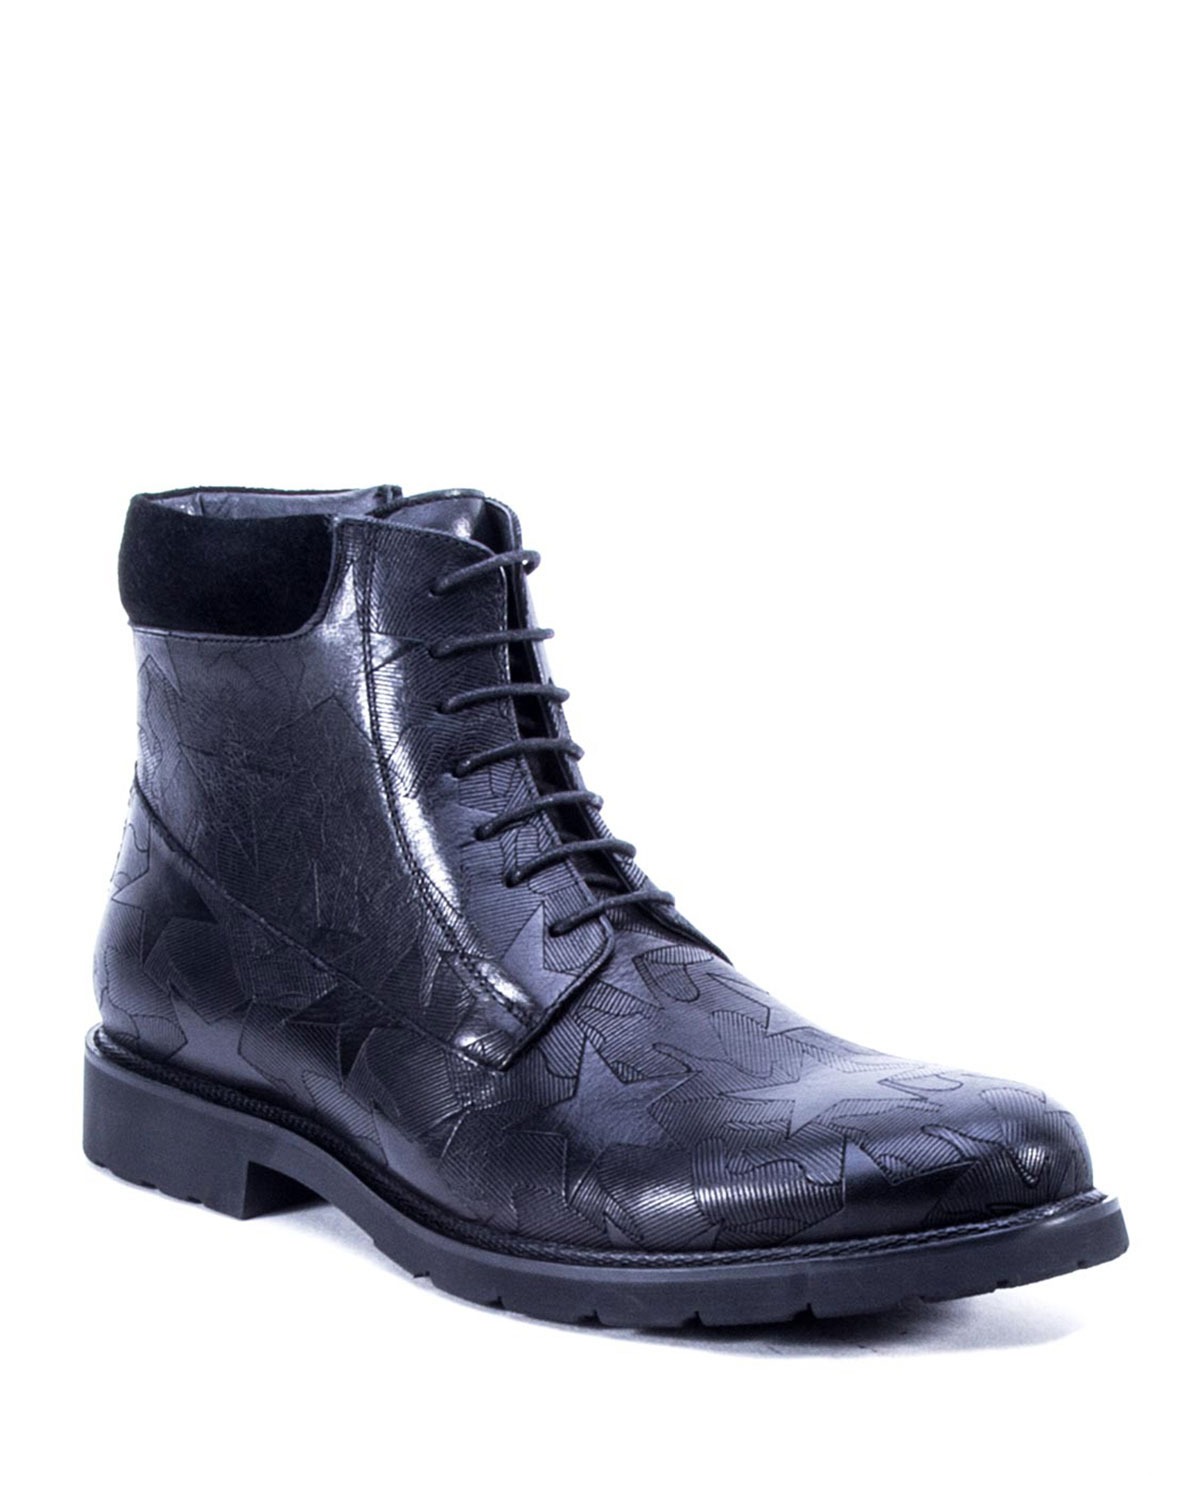 Men's William Star-Print Leather Ankle Boots